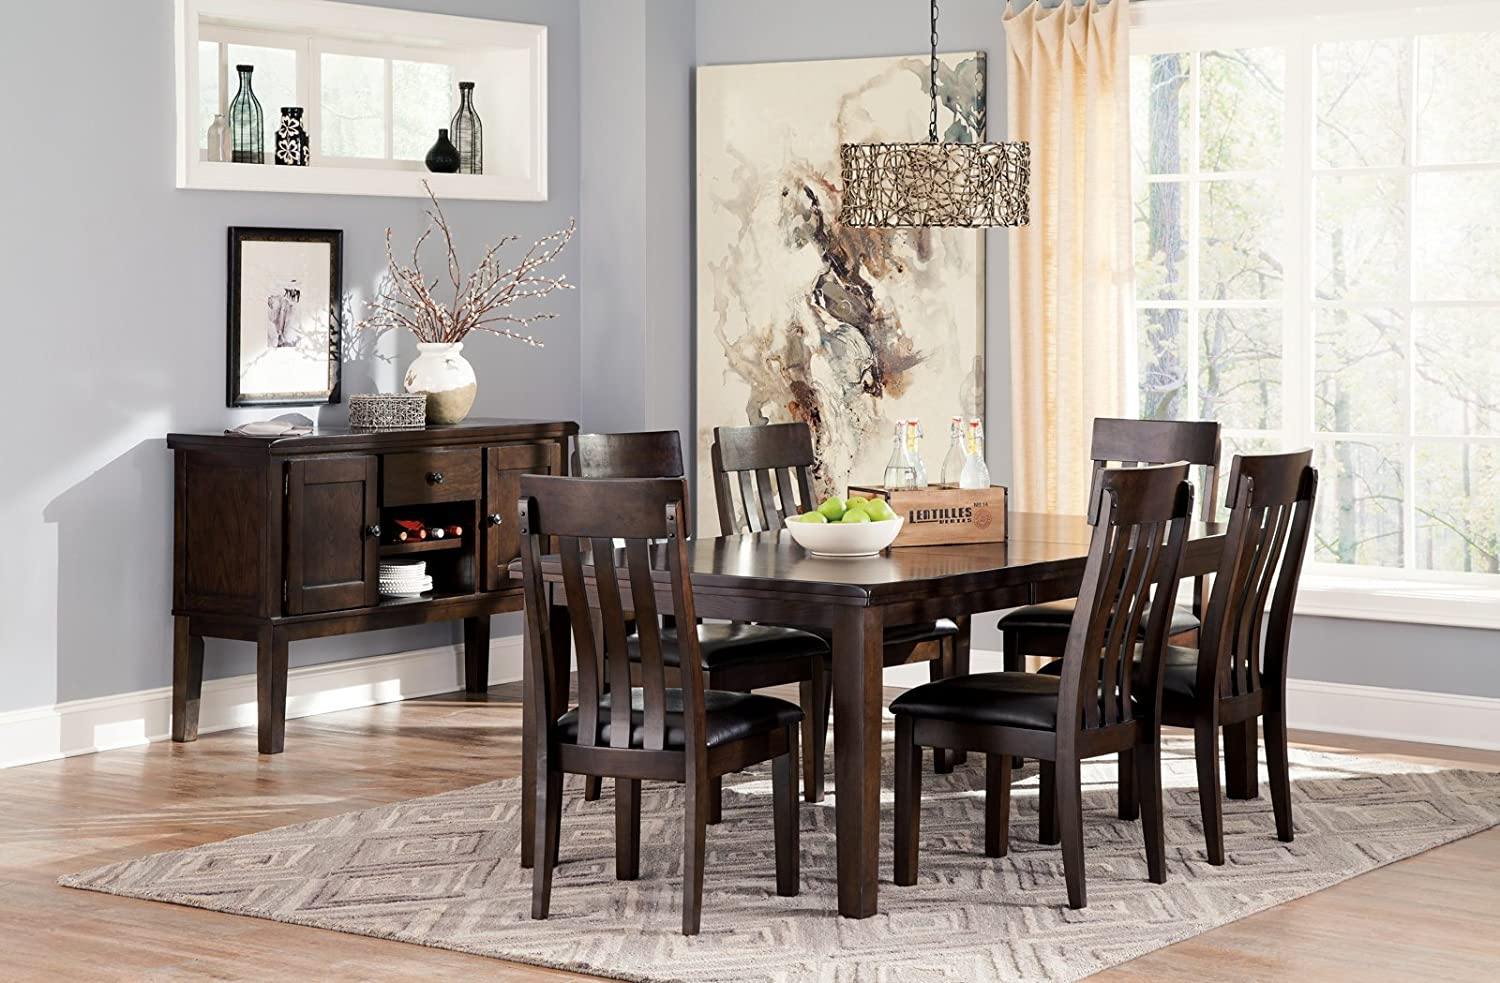 Amazon com   Signature Design by Ashley D596 35 Dining Room Table   Tables. Amazon com   Signature Design by Ashley D596 35 Dining Room Table